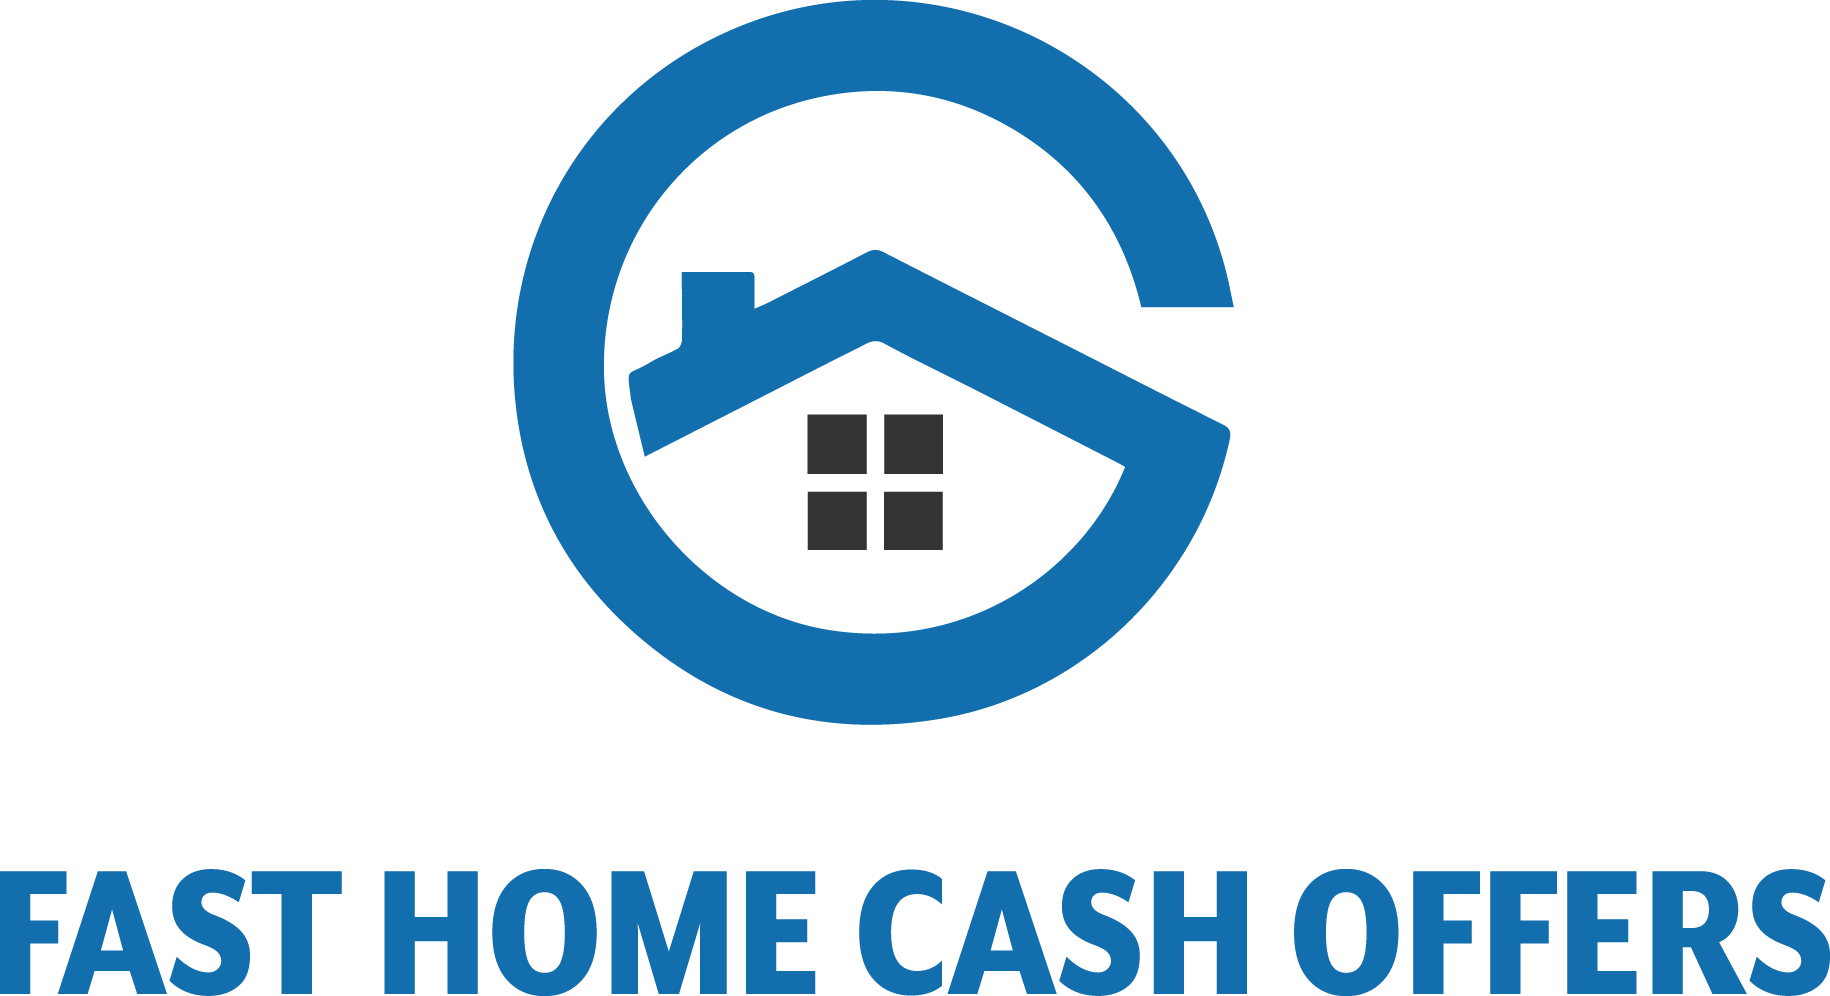 Fast Home Cash Offers logo